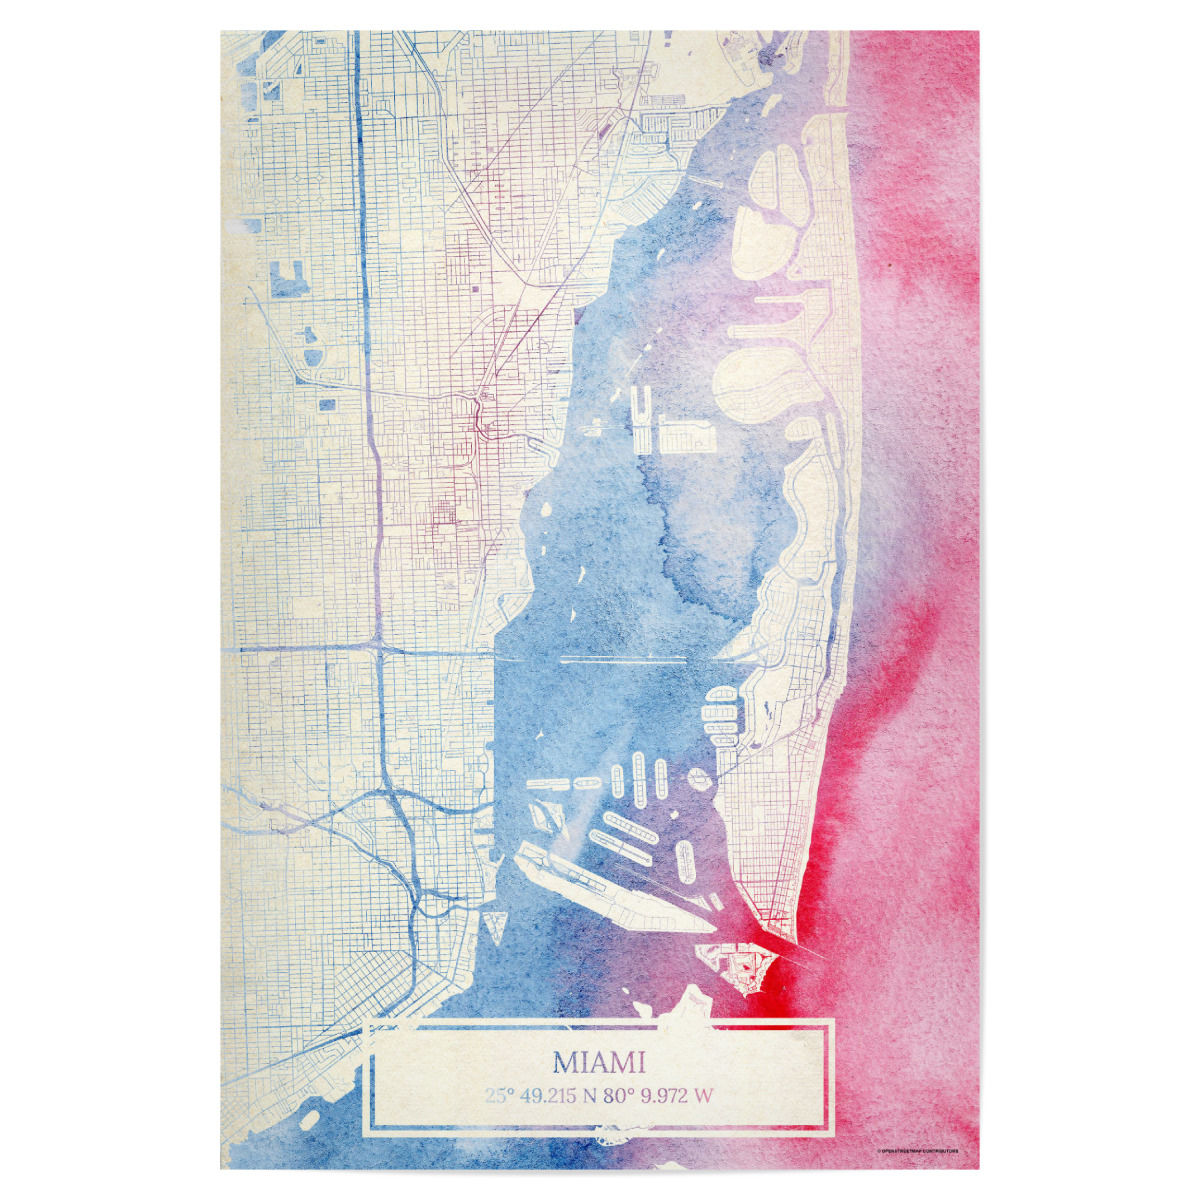 Purchase The Miami Usa Map Rose And Serenity Ii As A Poster At Artboxone